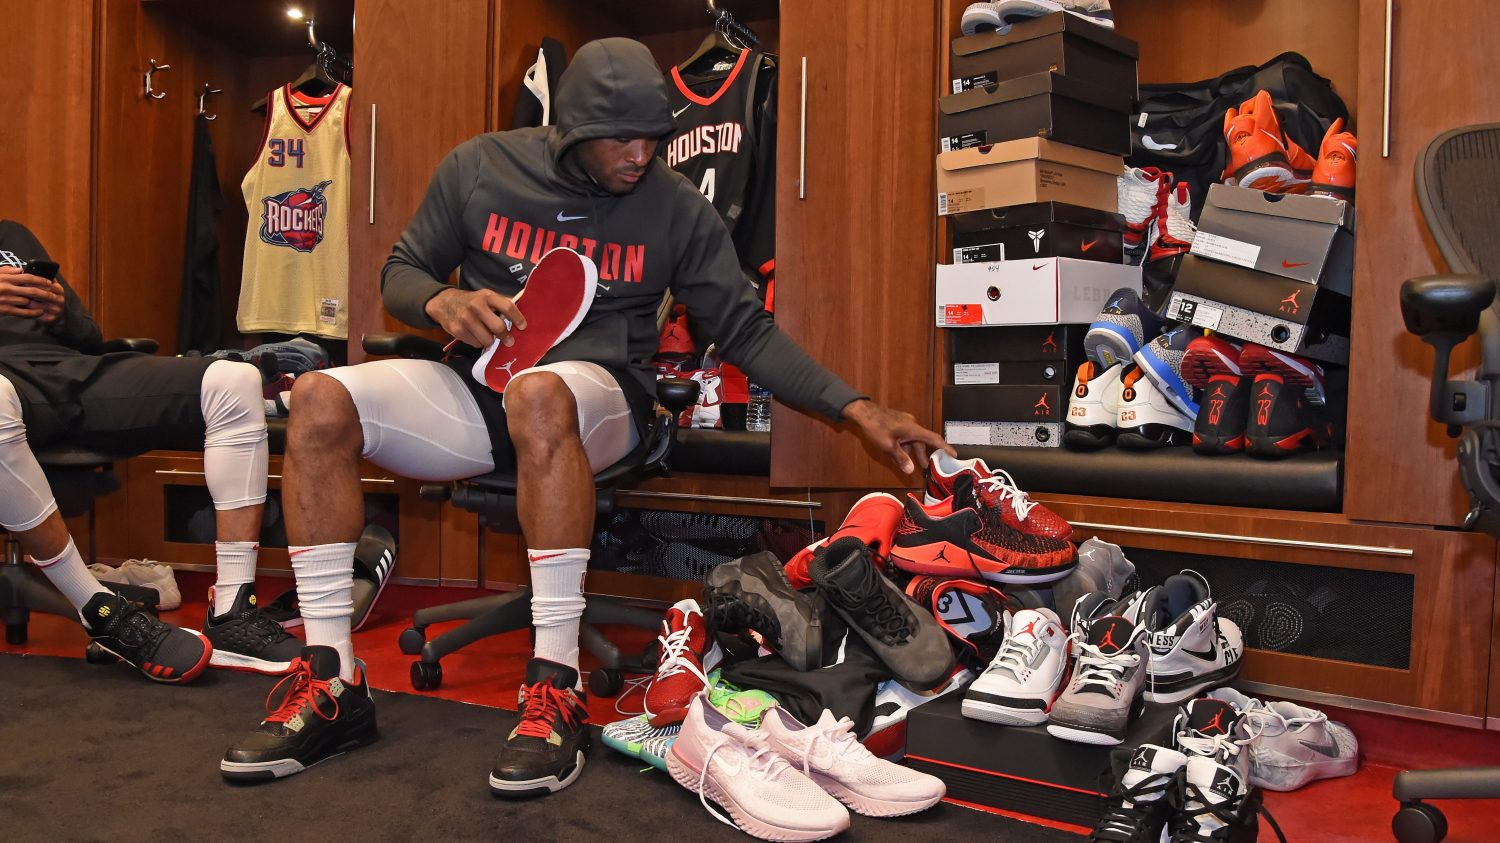 41f4fe75f6a The complete — and insane — list of P.J. Tucker's 2018 NBA playoff sneakers